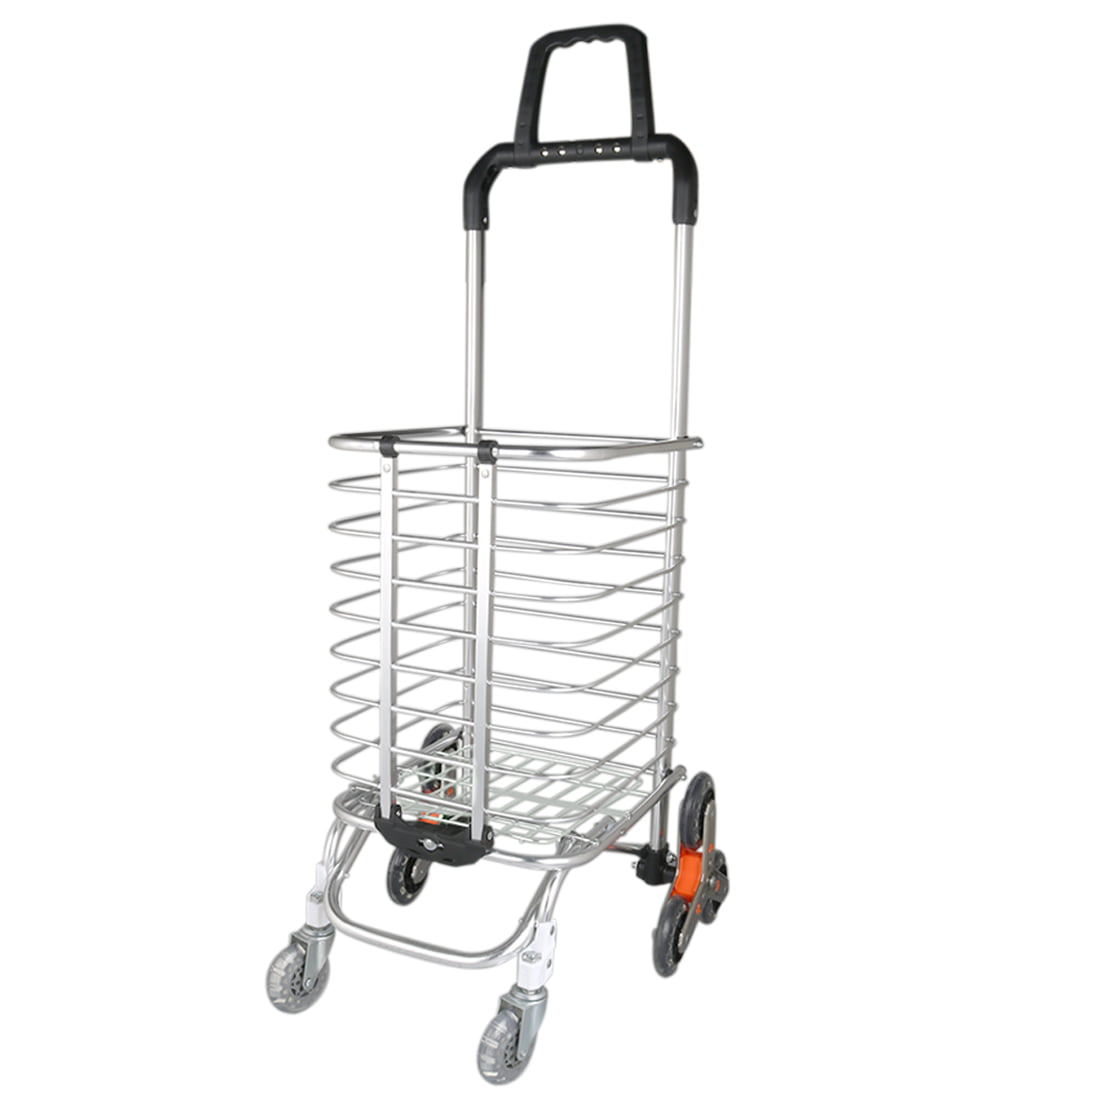 DEI QI Folding Shopping Cart Portable Foldable Utility Cart with Wheels Trolley Bags Utility Cart for Travel Shopping Laundry Book Luggage Color : Brown